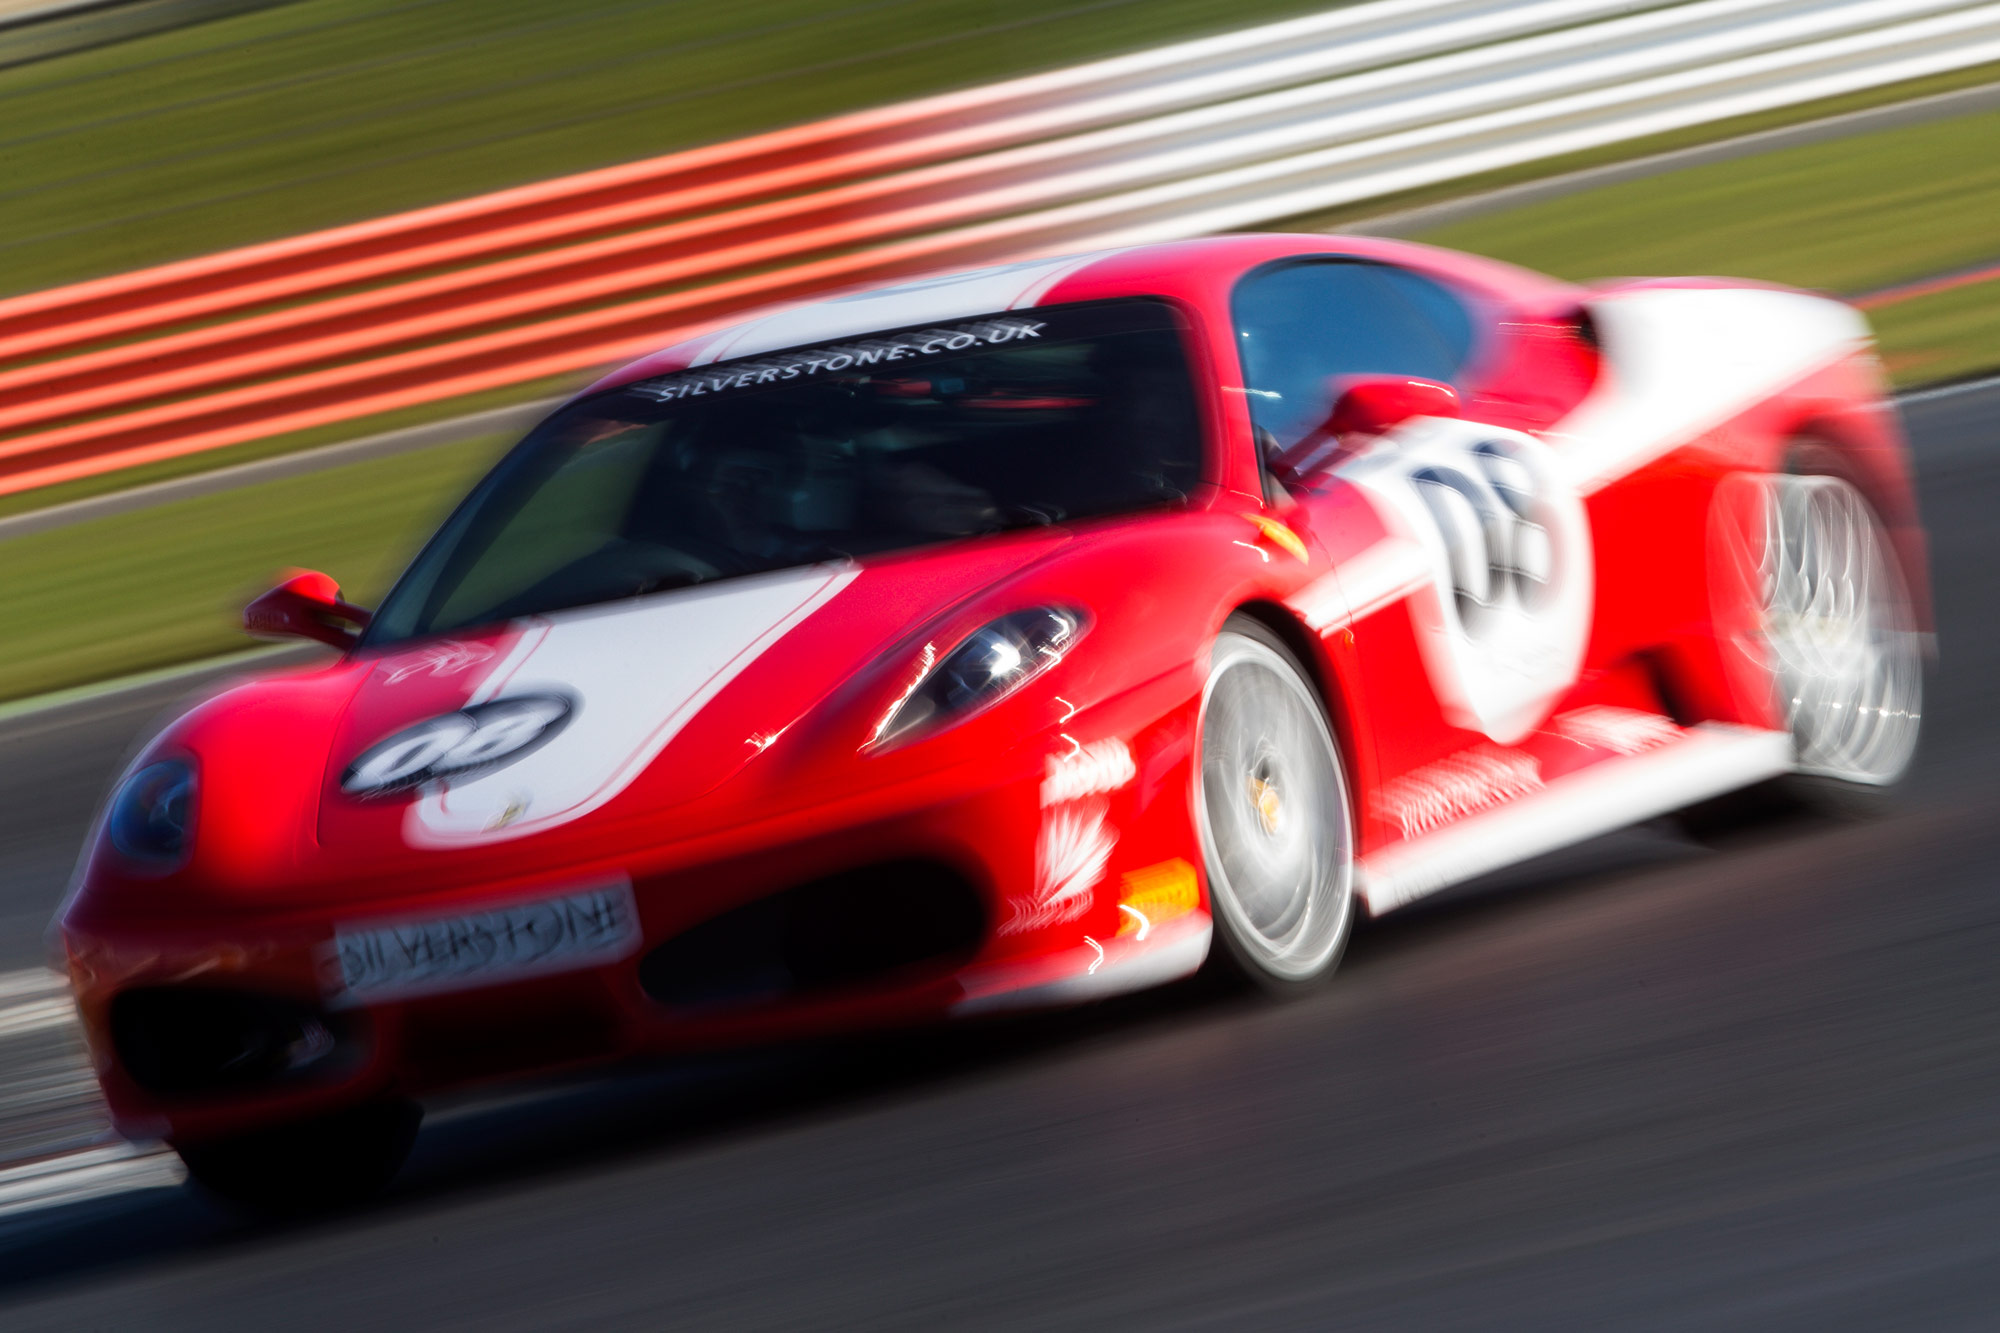 Ferrari F430 on track at Silverstone